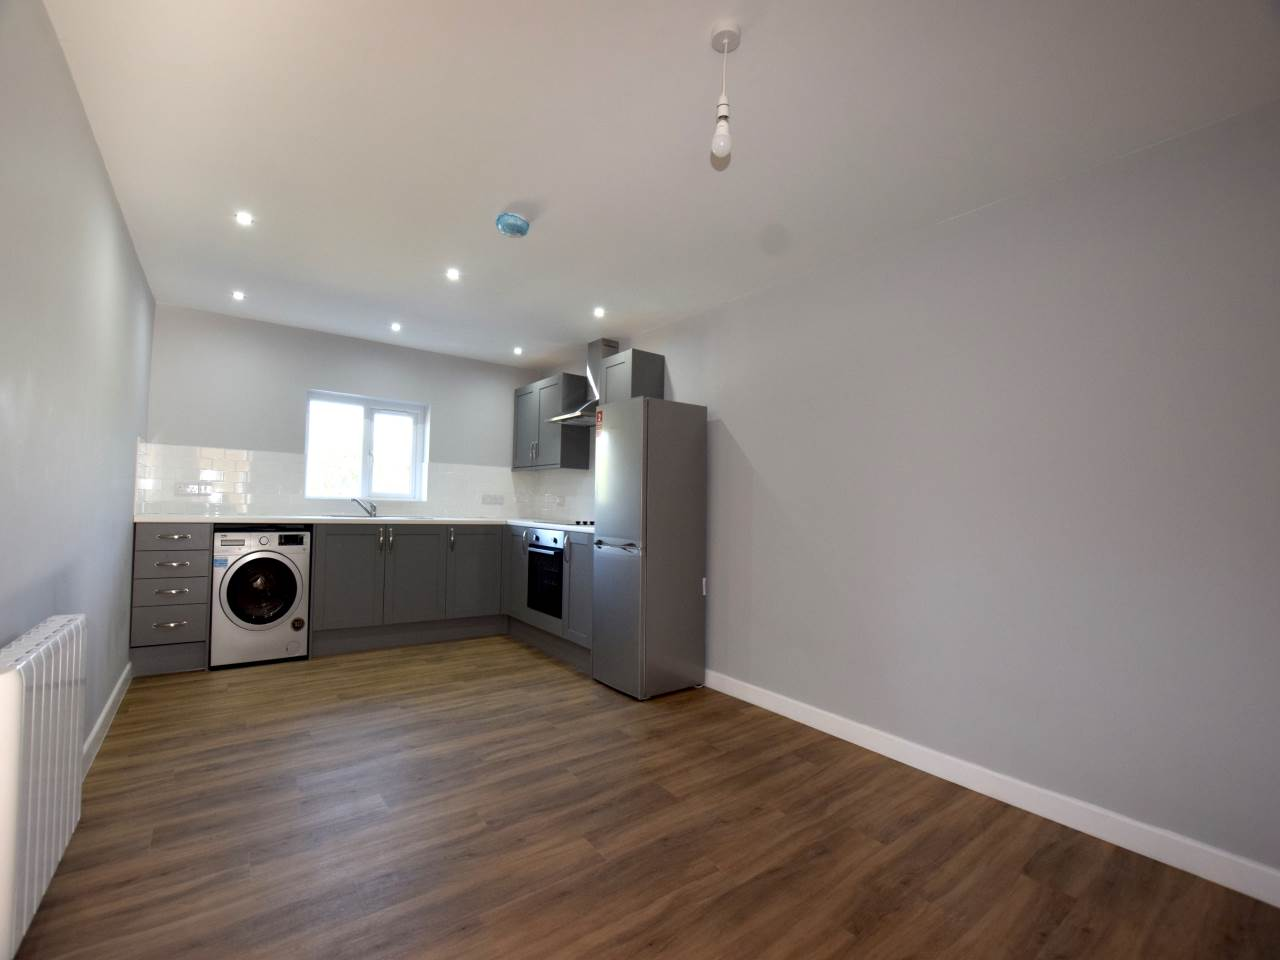 2 bed flat to rent in Central Stores Flats, Talybont 2